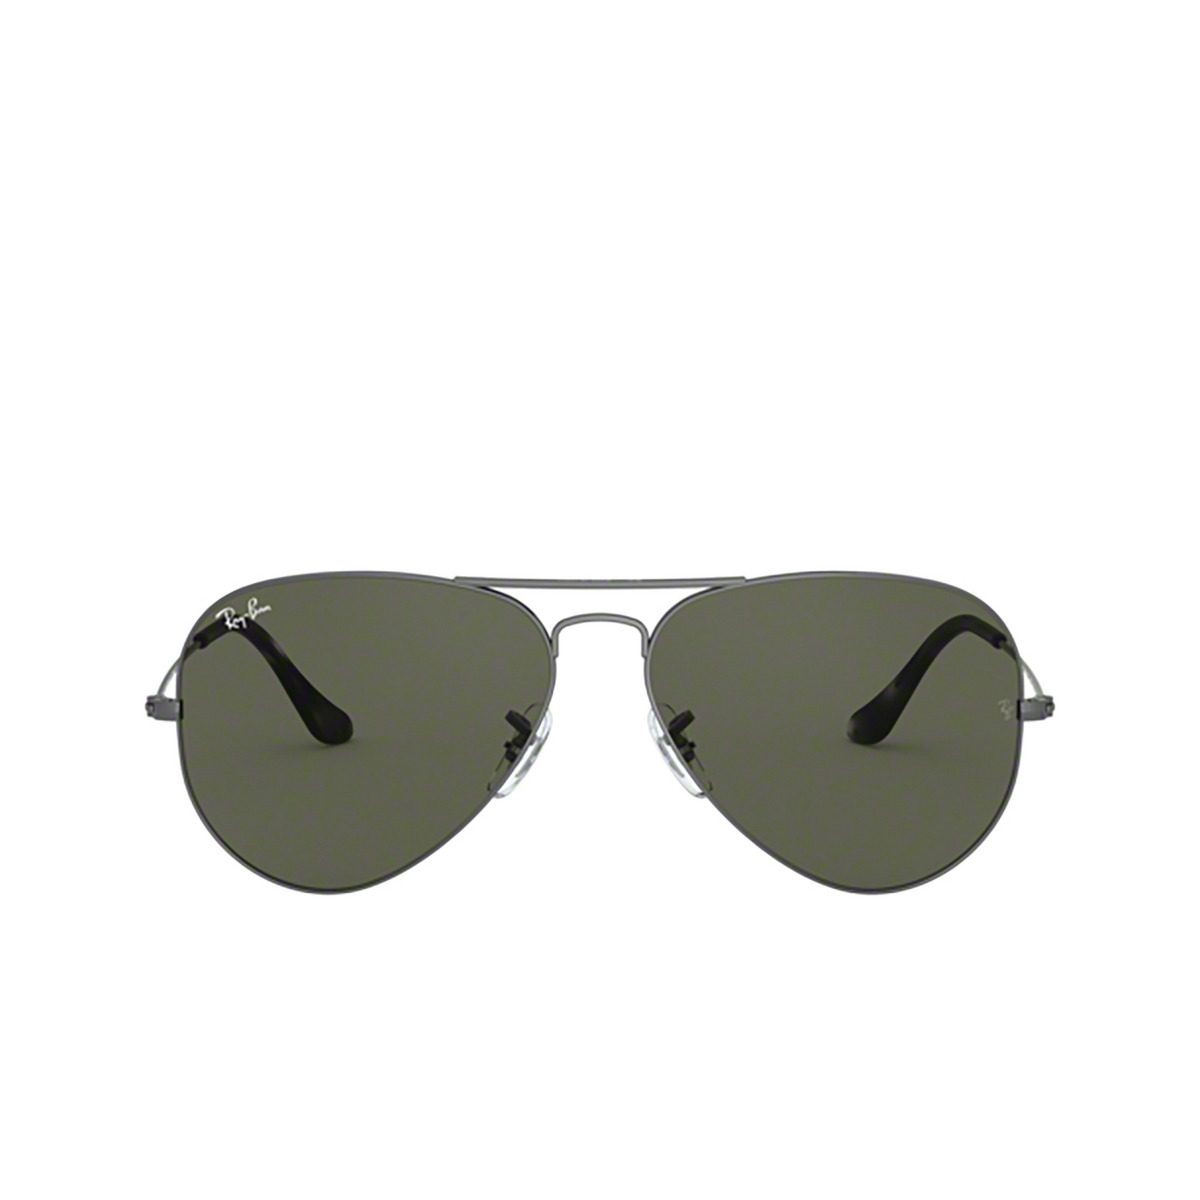 Ray-Ban® Aviator Sunglasses: Aviator Large Metal RB3025 color Sand Transparent Grey 919031 - front view.